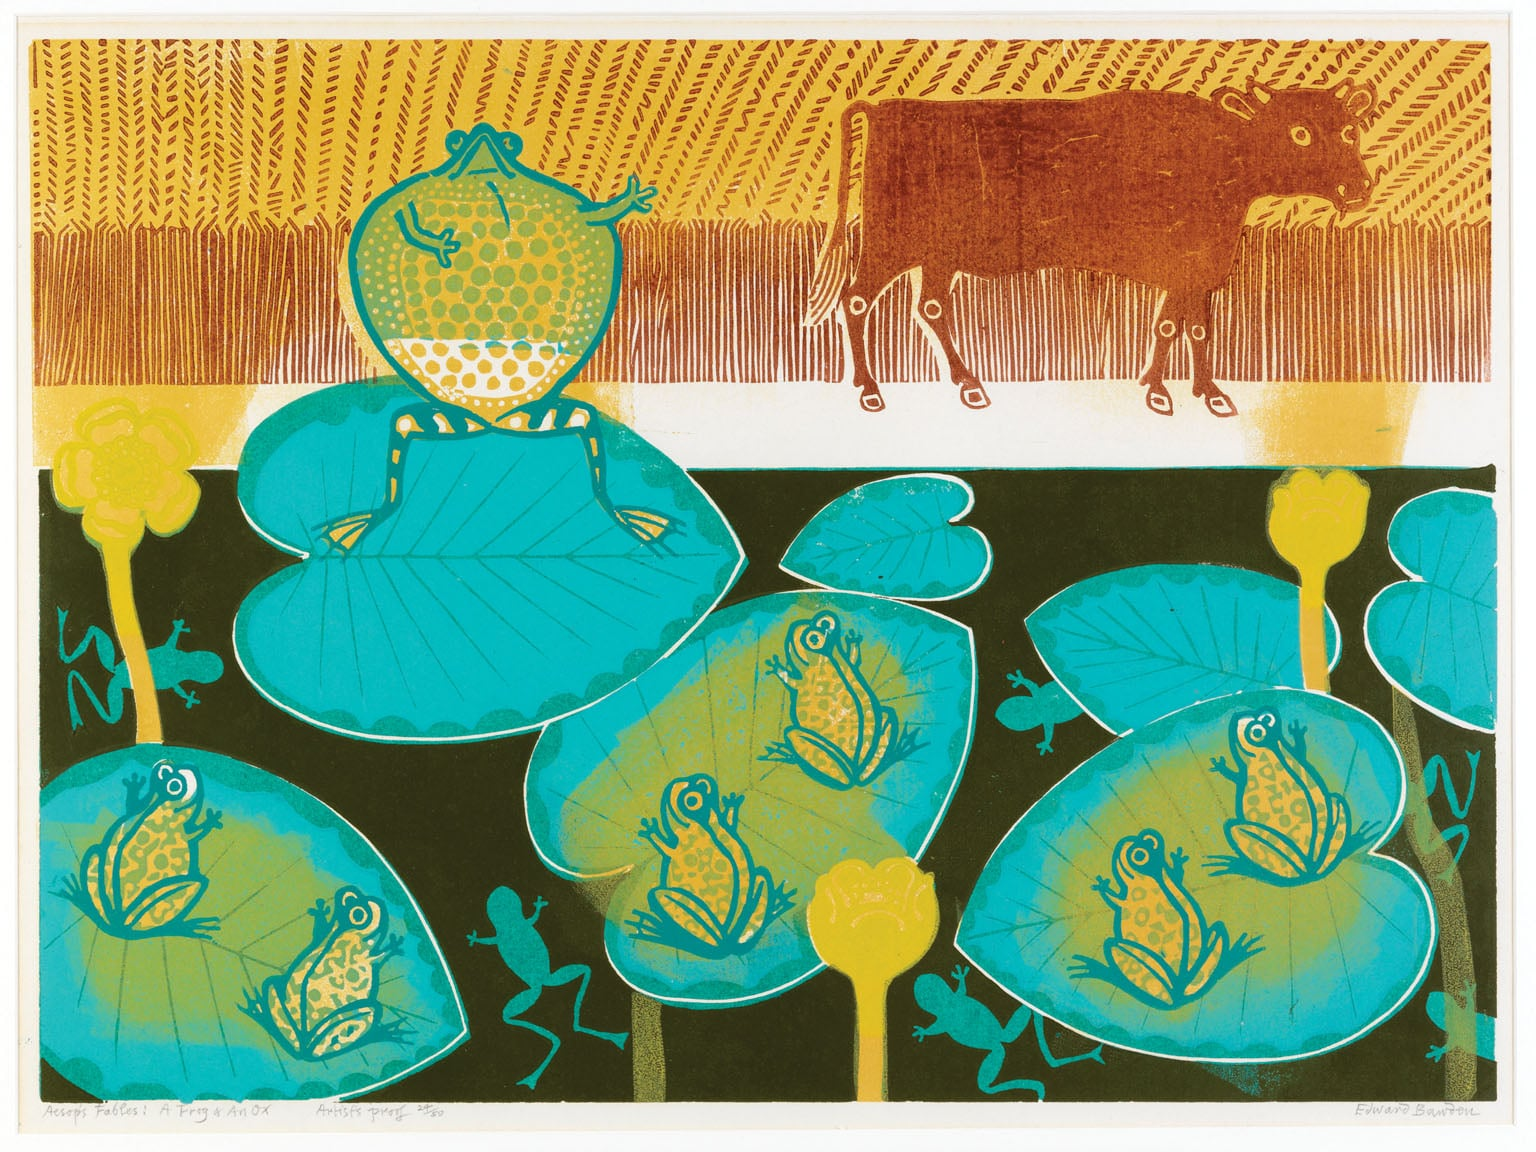 Five linocuts from the Aesop Suite